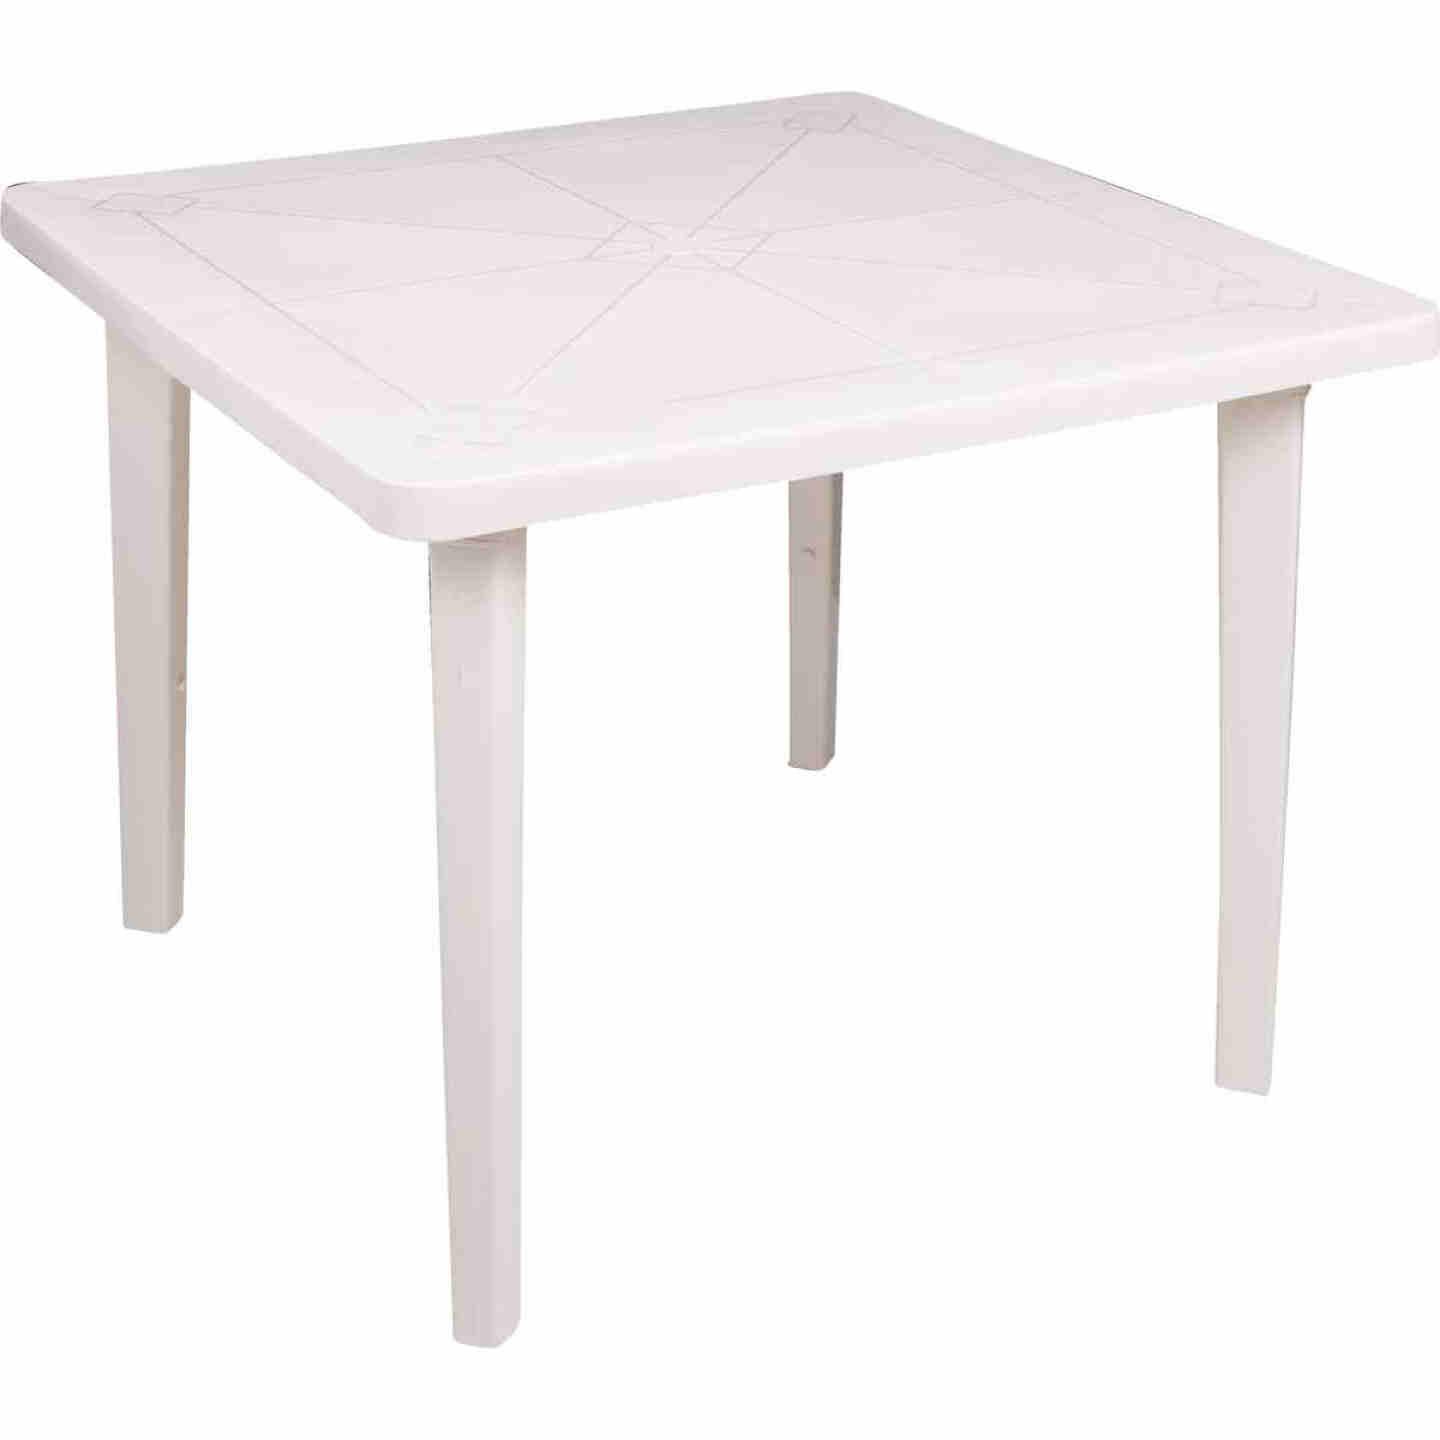 Adams 36 In. Square White Resin Table Image 1